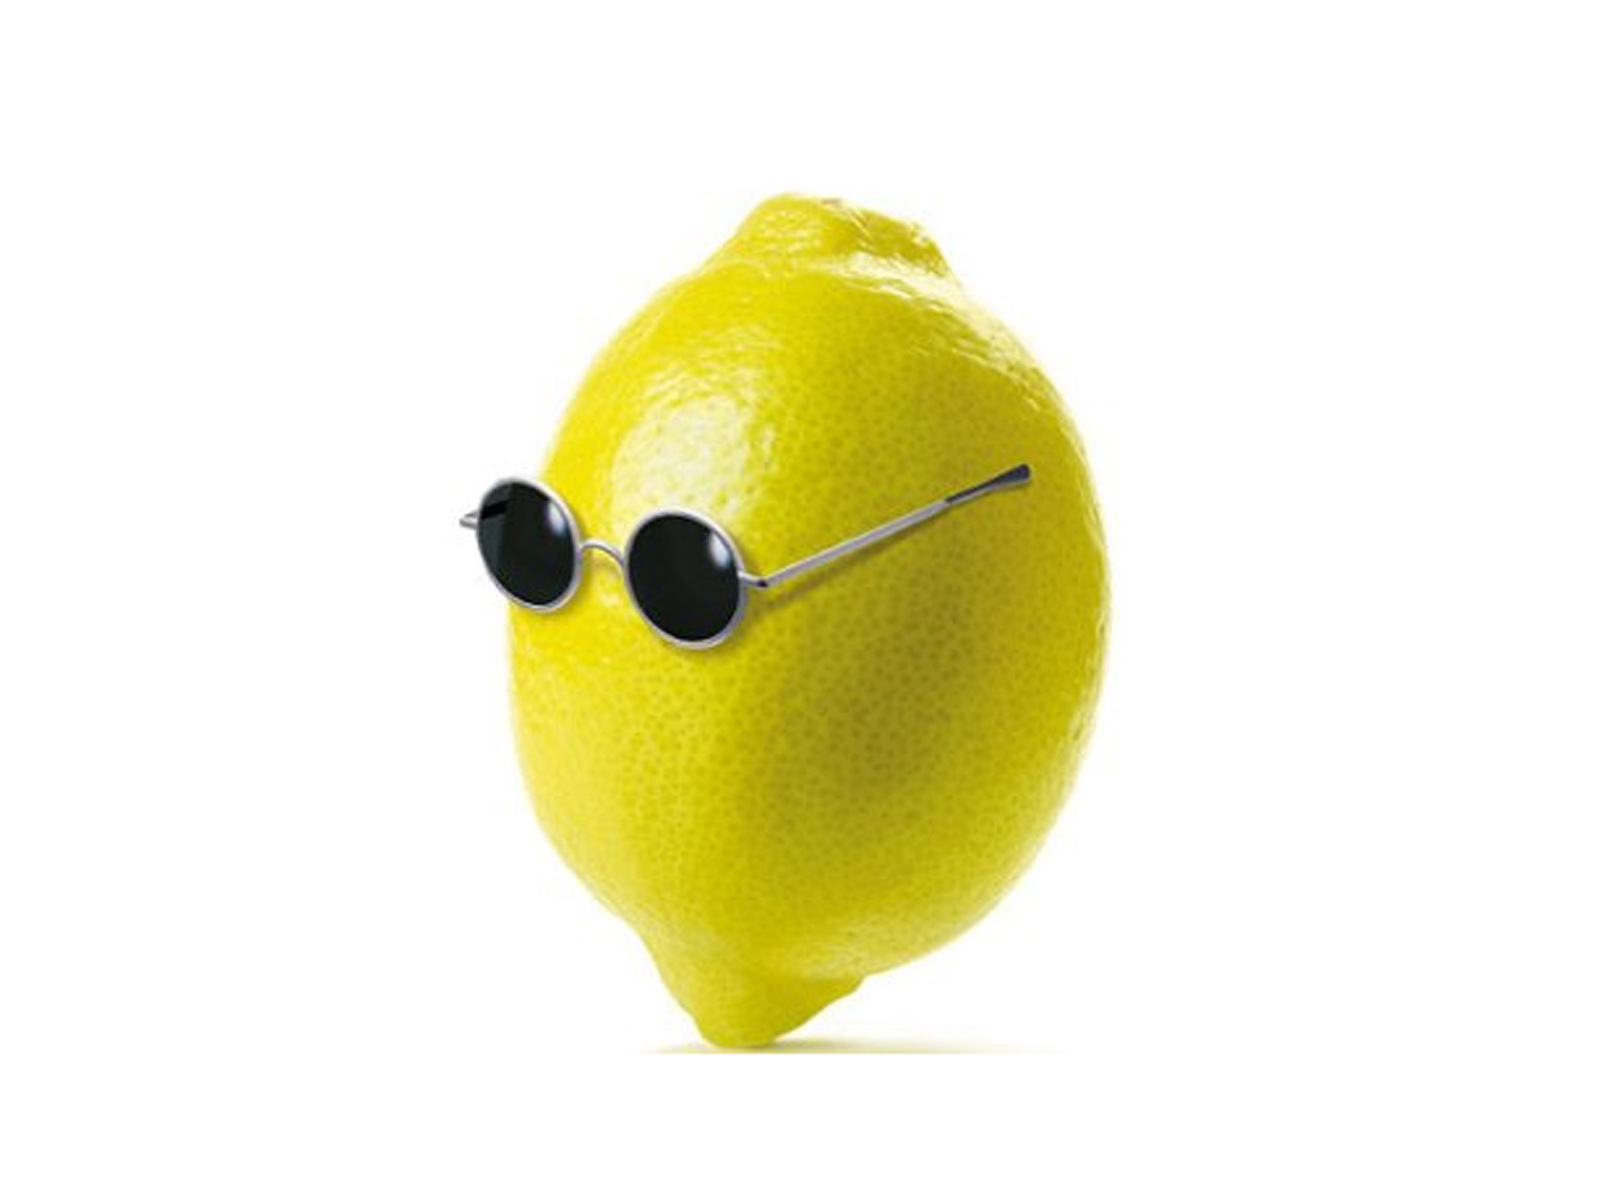 wallpapers: Funny Lemon Wallpapers